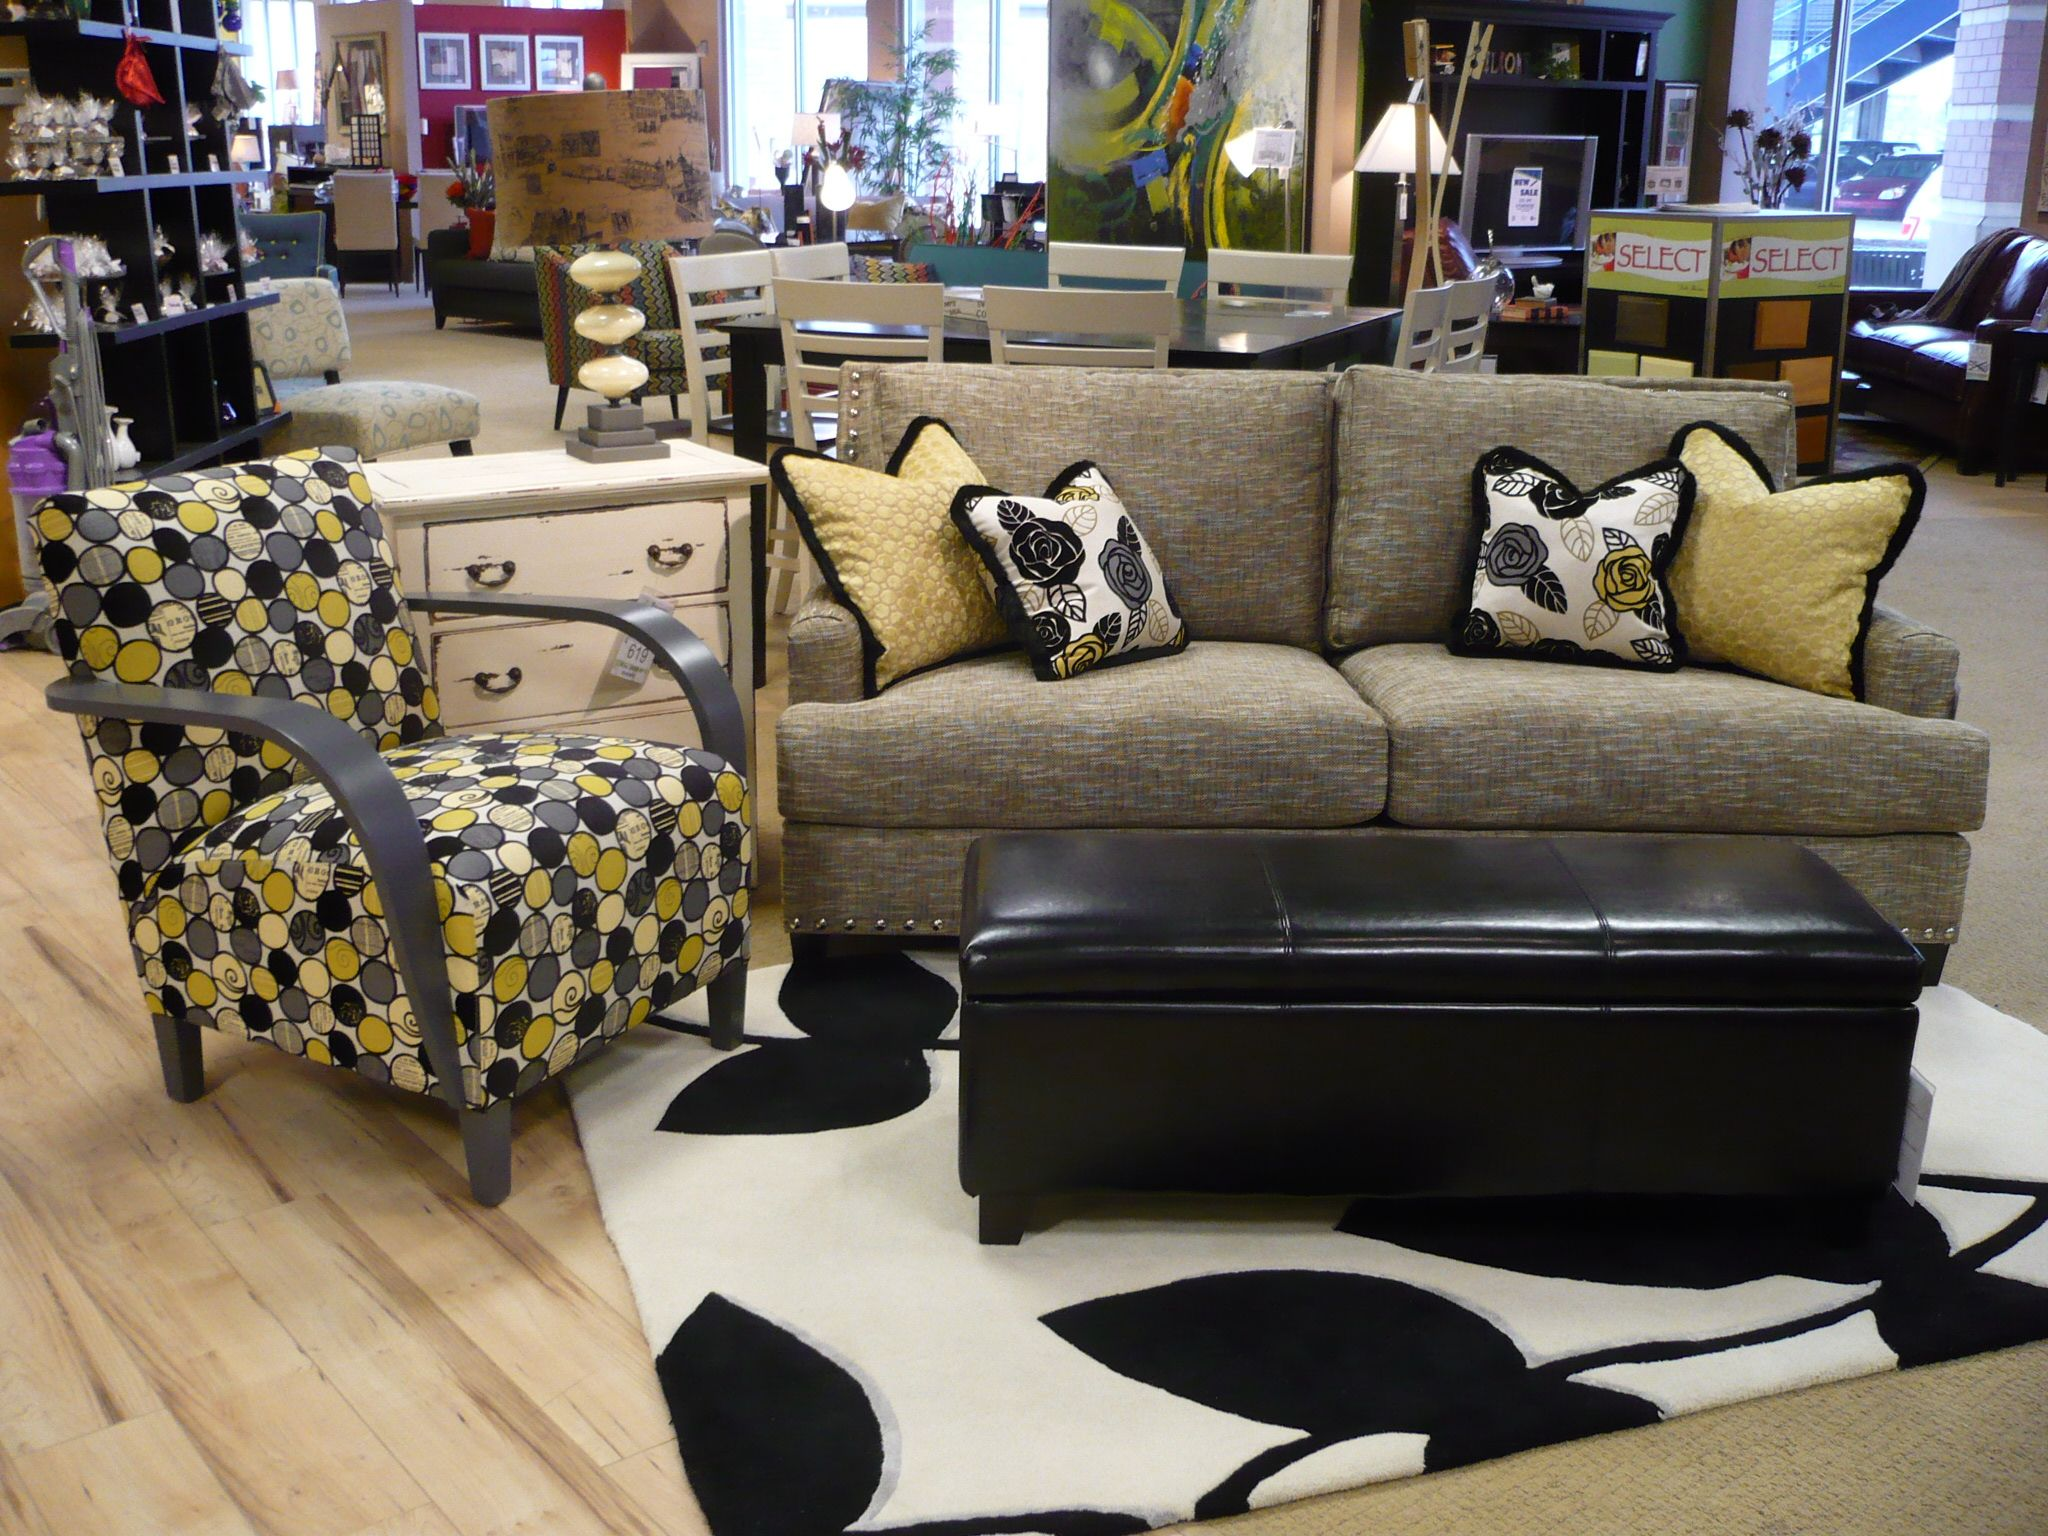 The Linkin Sofa and the Basie Chair comes together through matching colors instead of patterns.